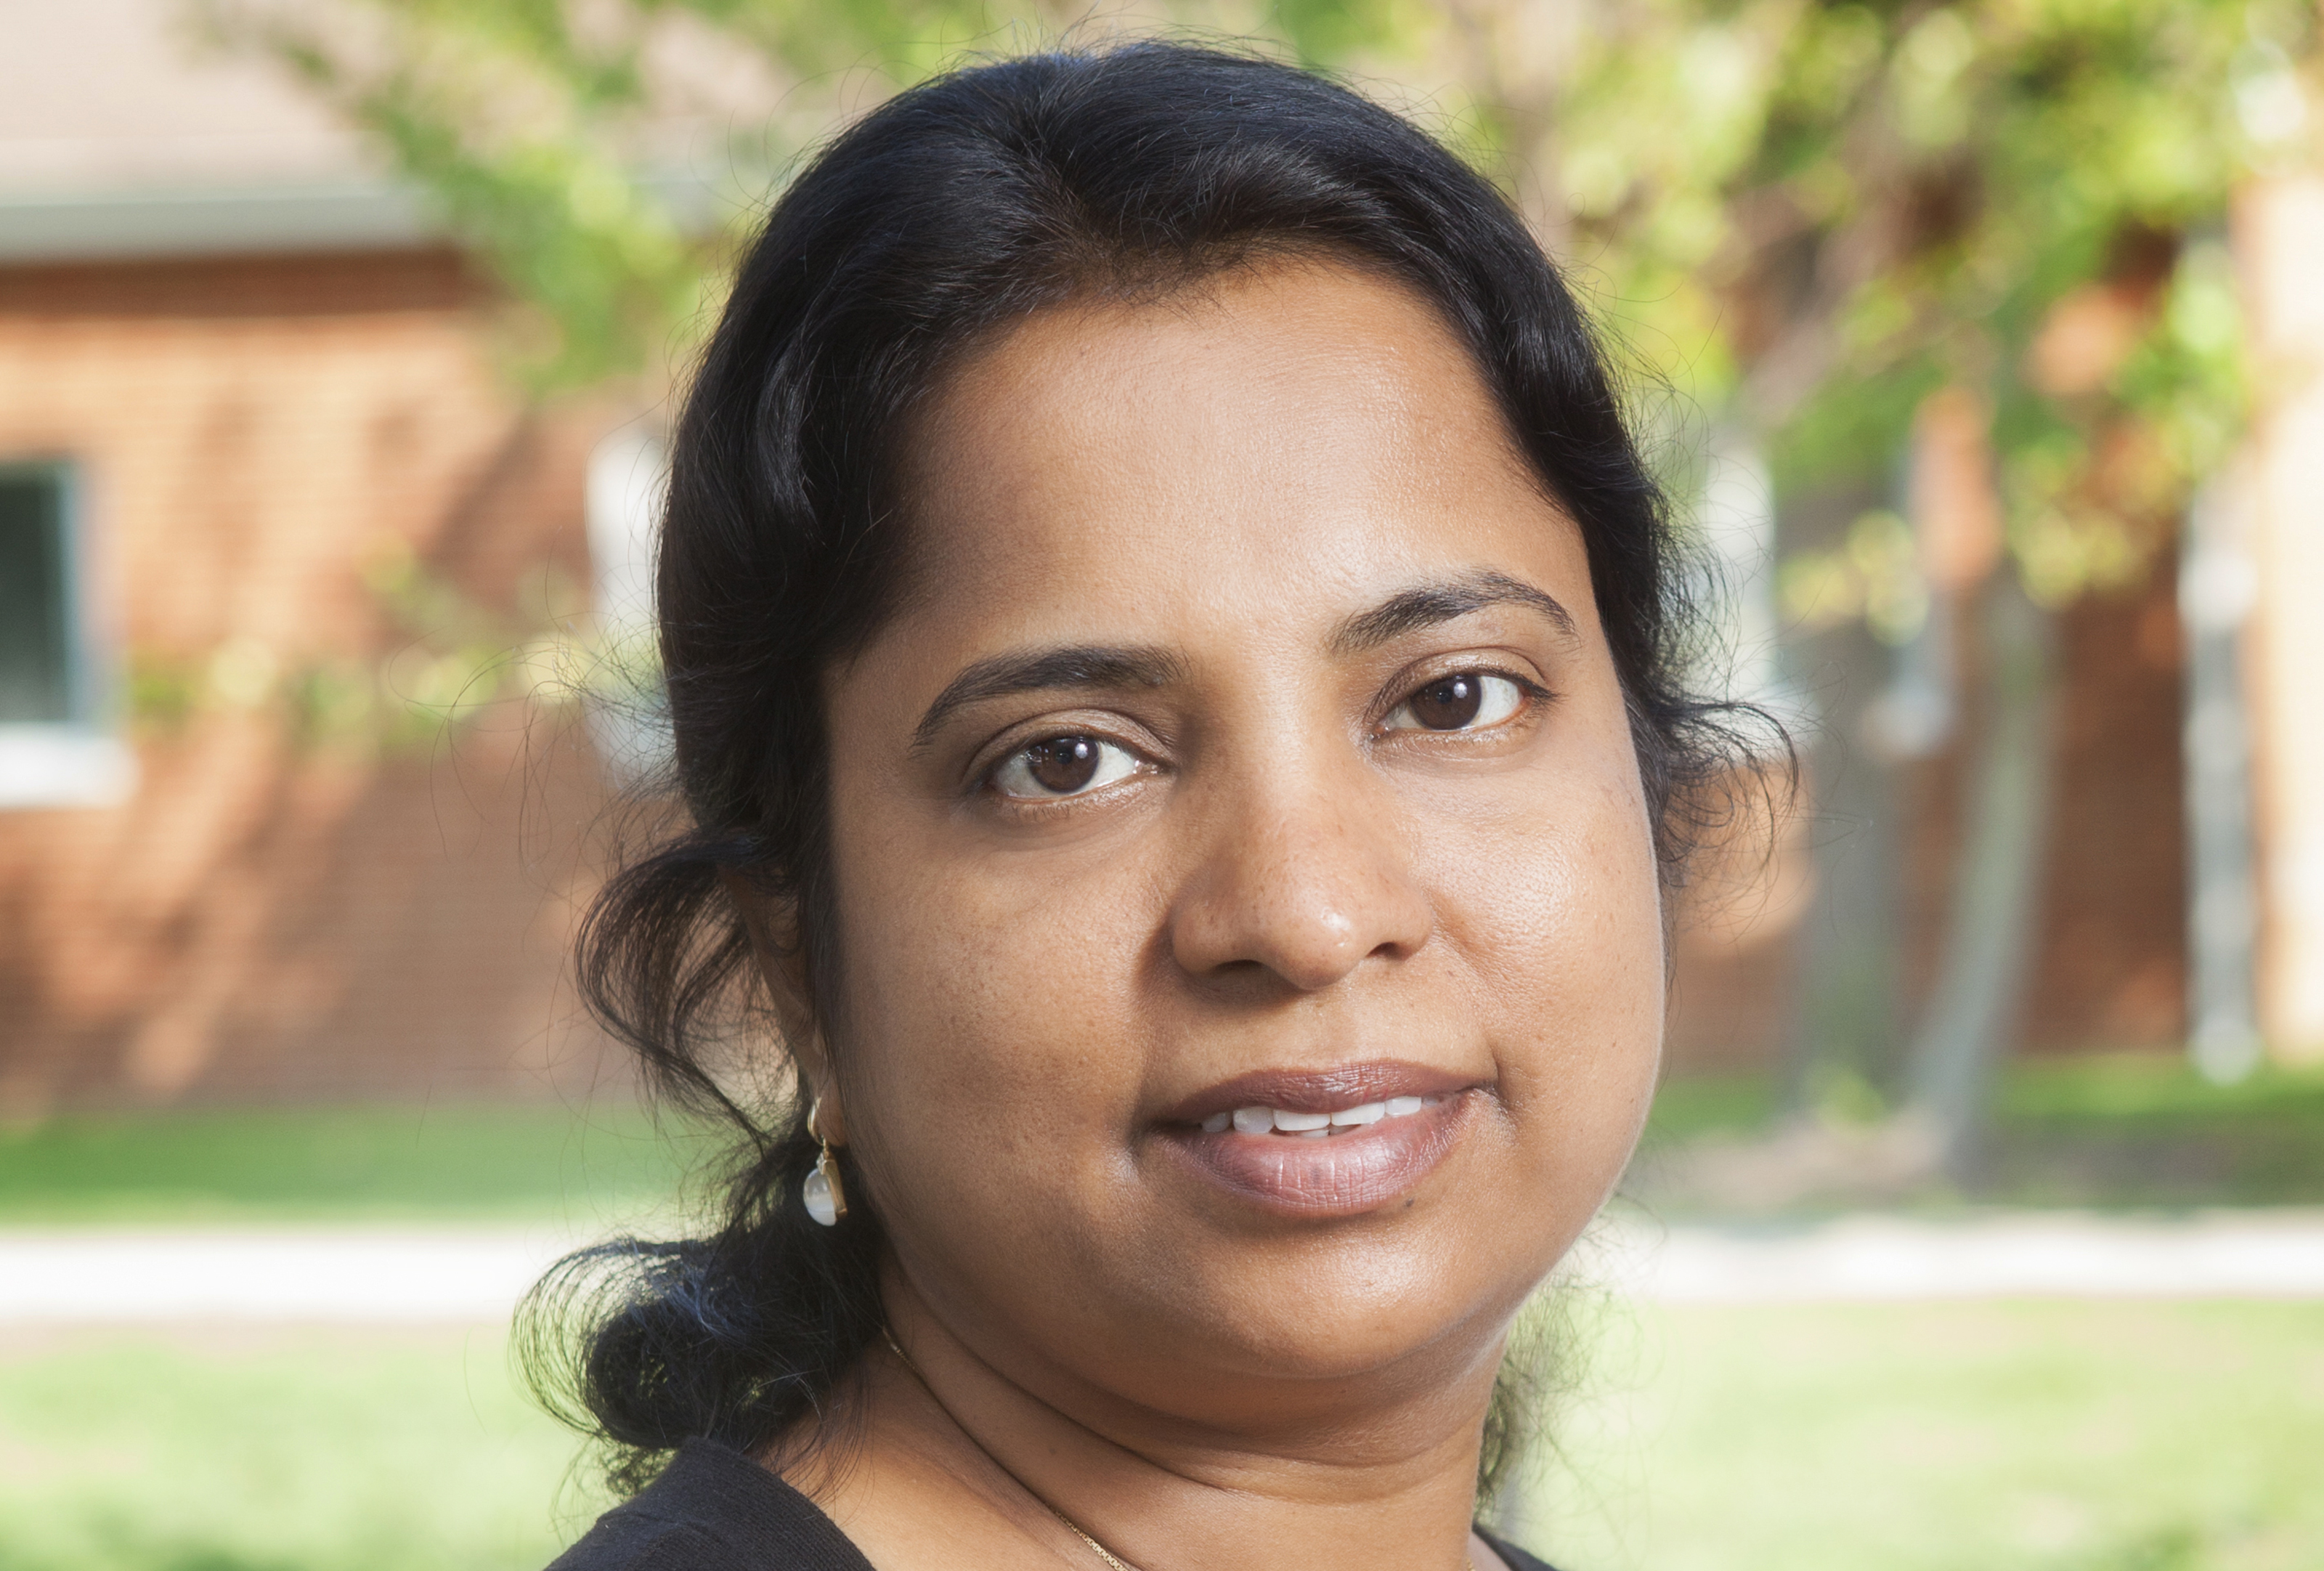 Dr. Kalpalatha Melmaiee, Associate Professor in the Department of Agriculture and Natural Resources, has been awarded a $599,905 grant to lead a team of researchers to address the problem of gray mold fungus on strawberries.